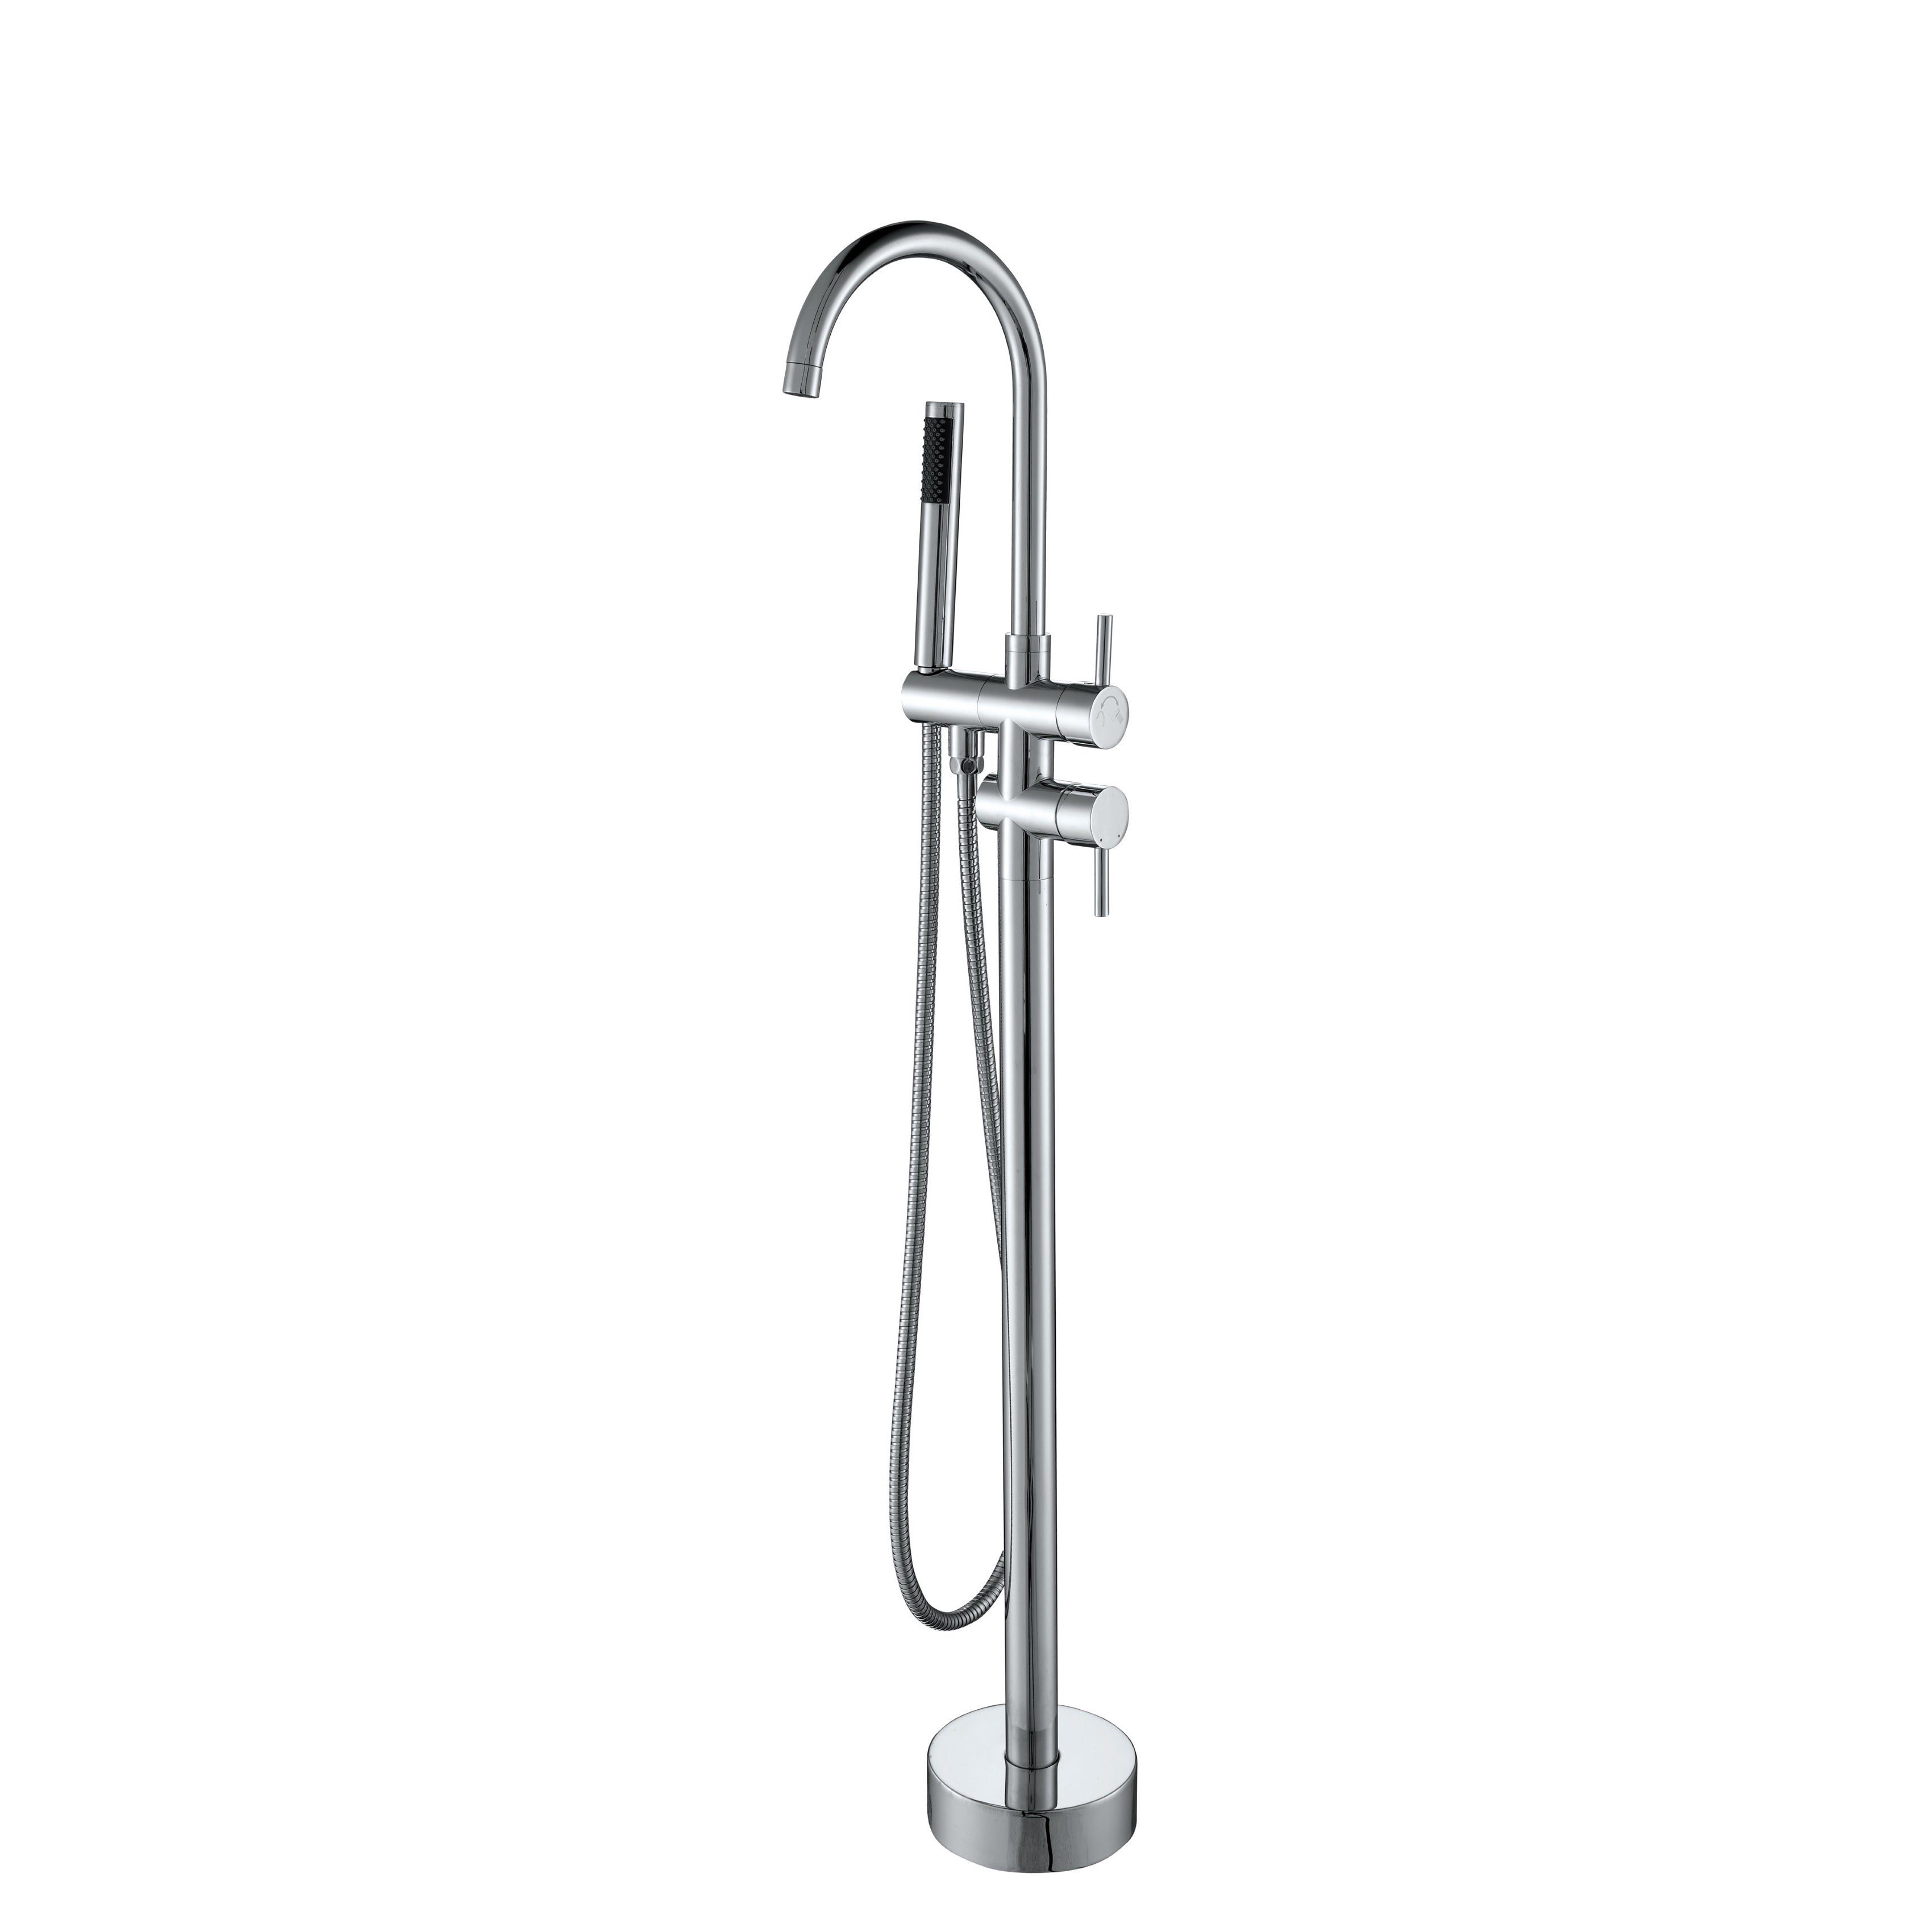 Shop Vanity Art Freestanding Bathtub Faucet - Chrome - Free Shipping ...